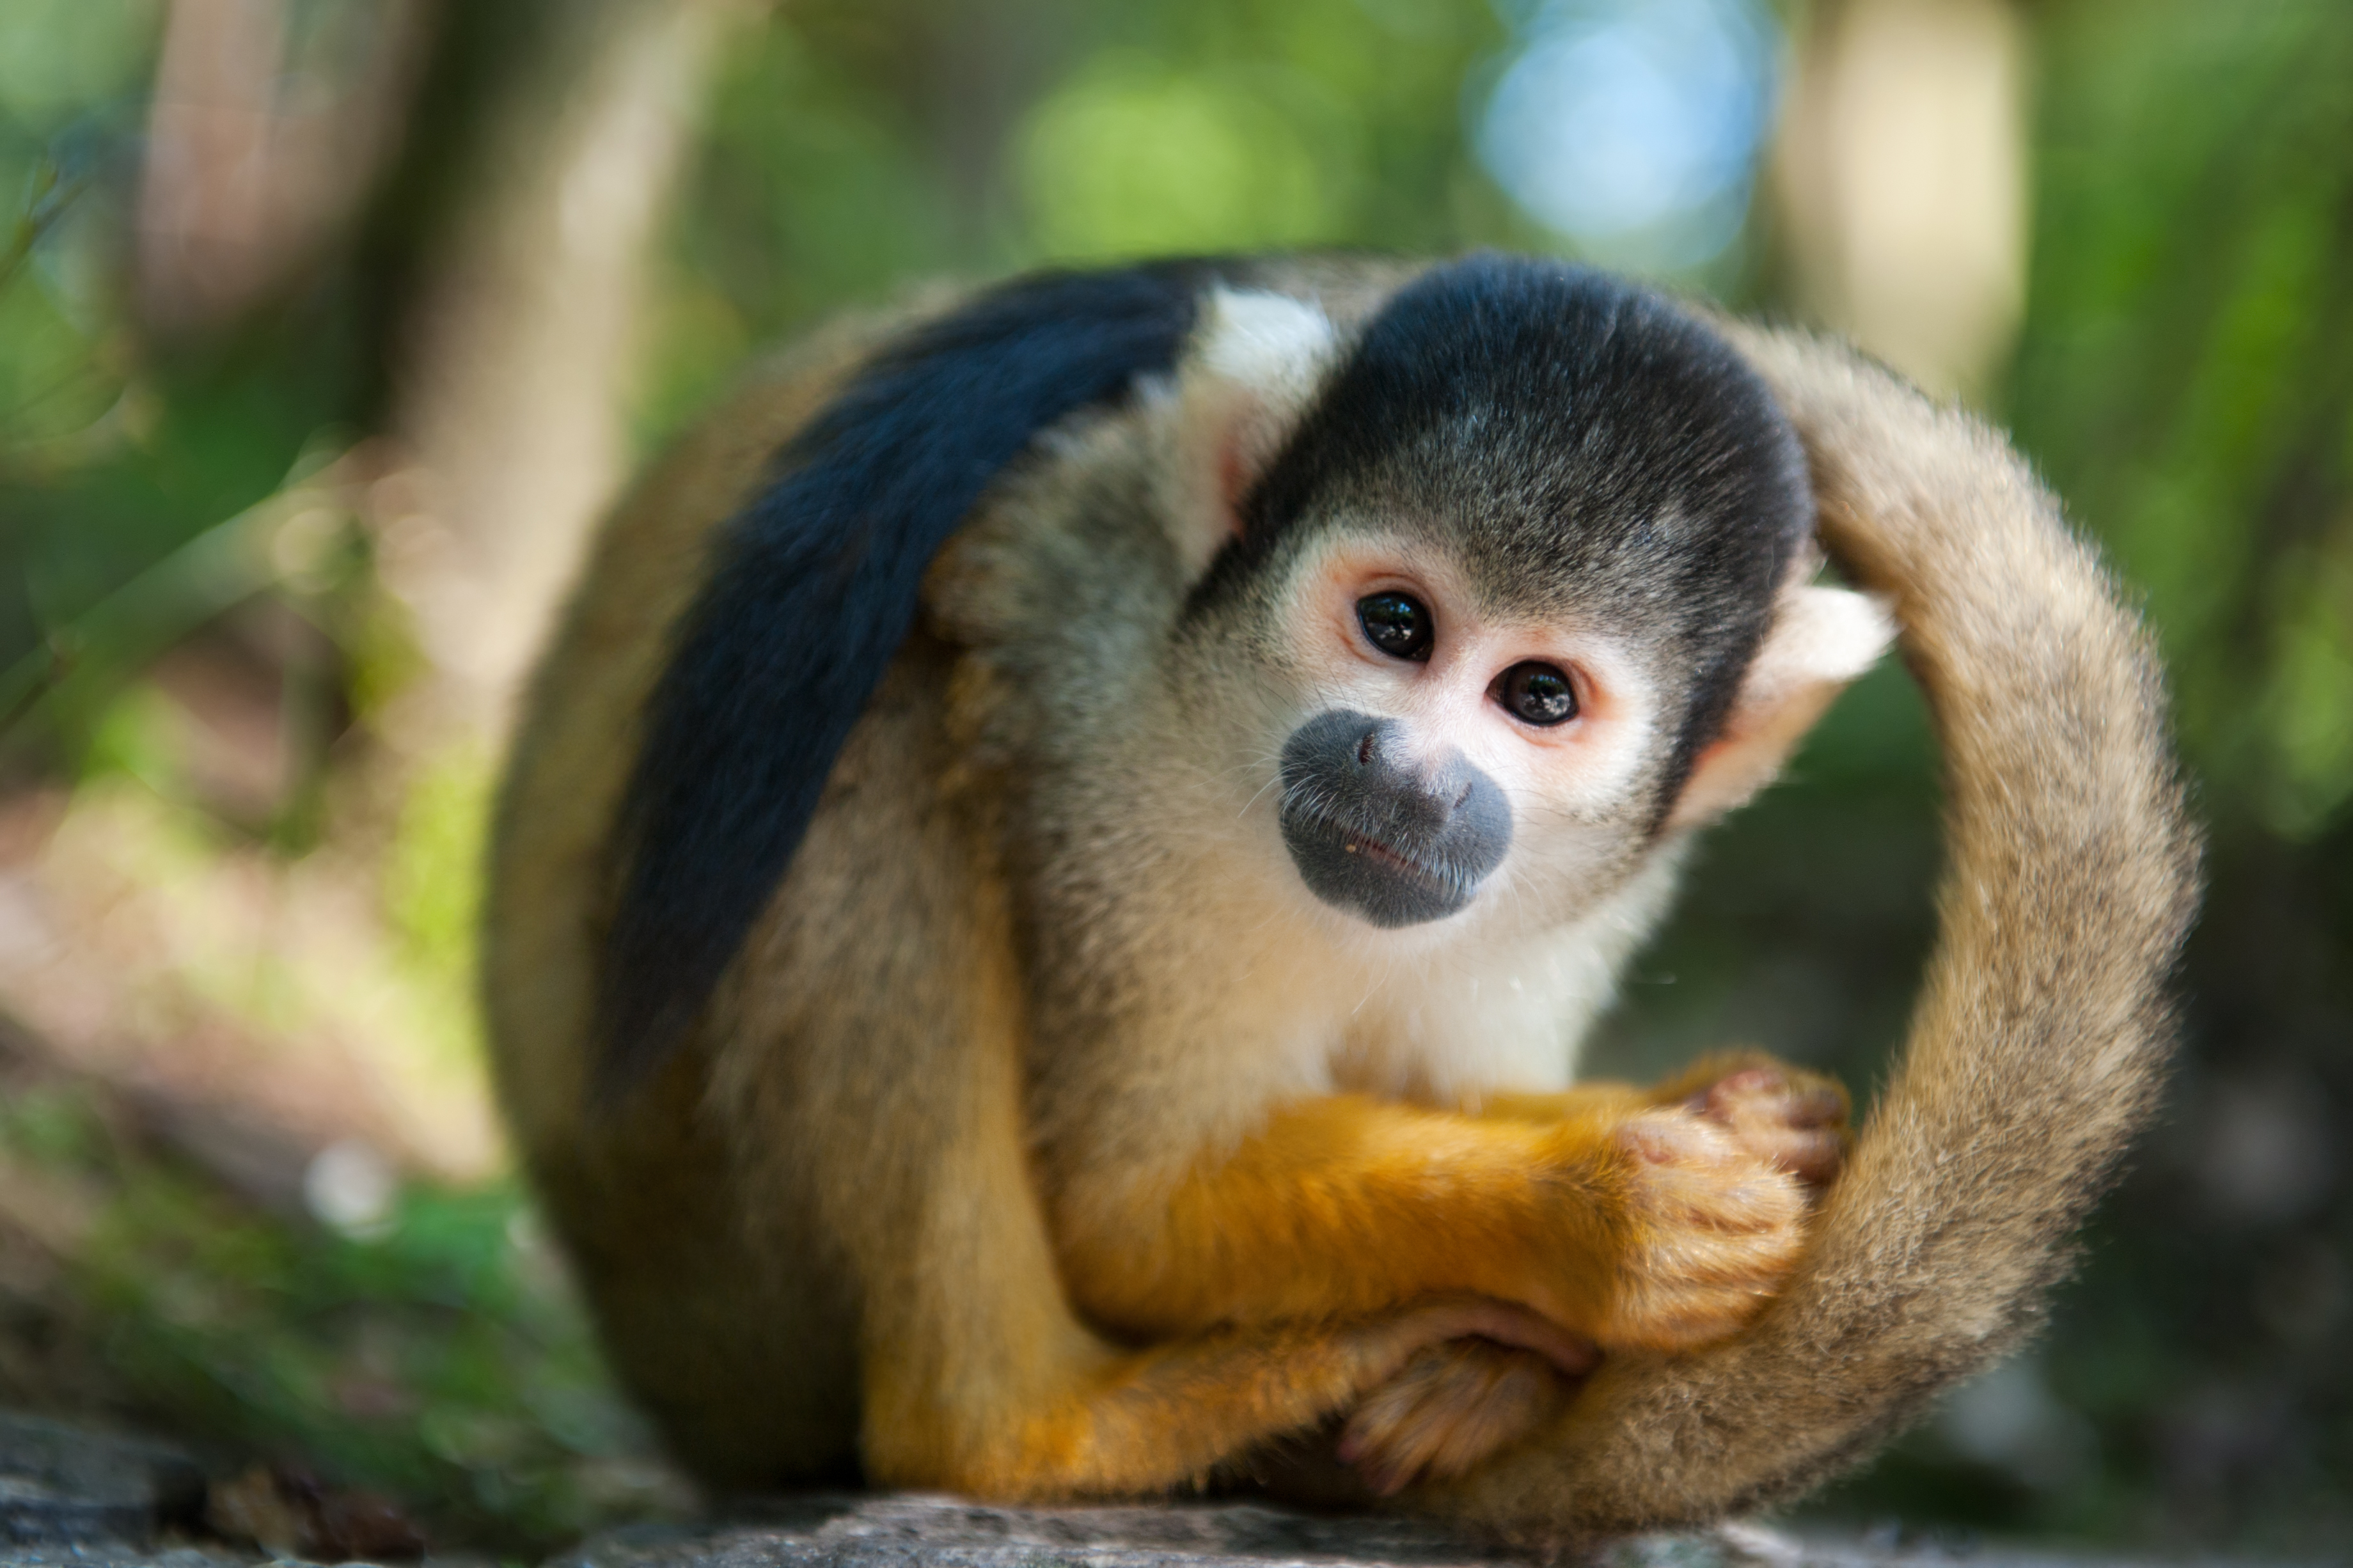 Costa Rica - Squirrel Monkey